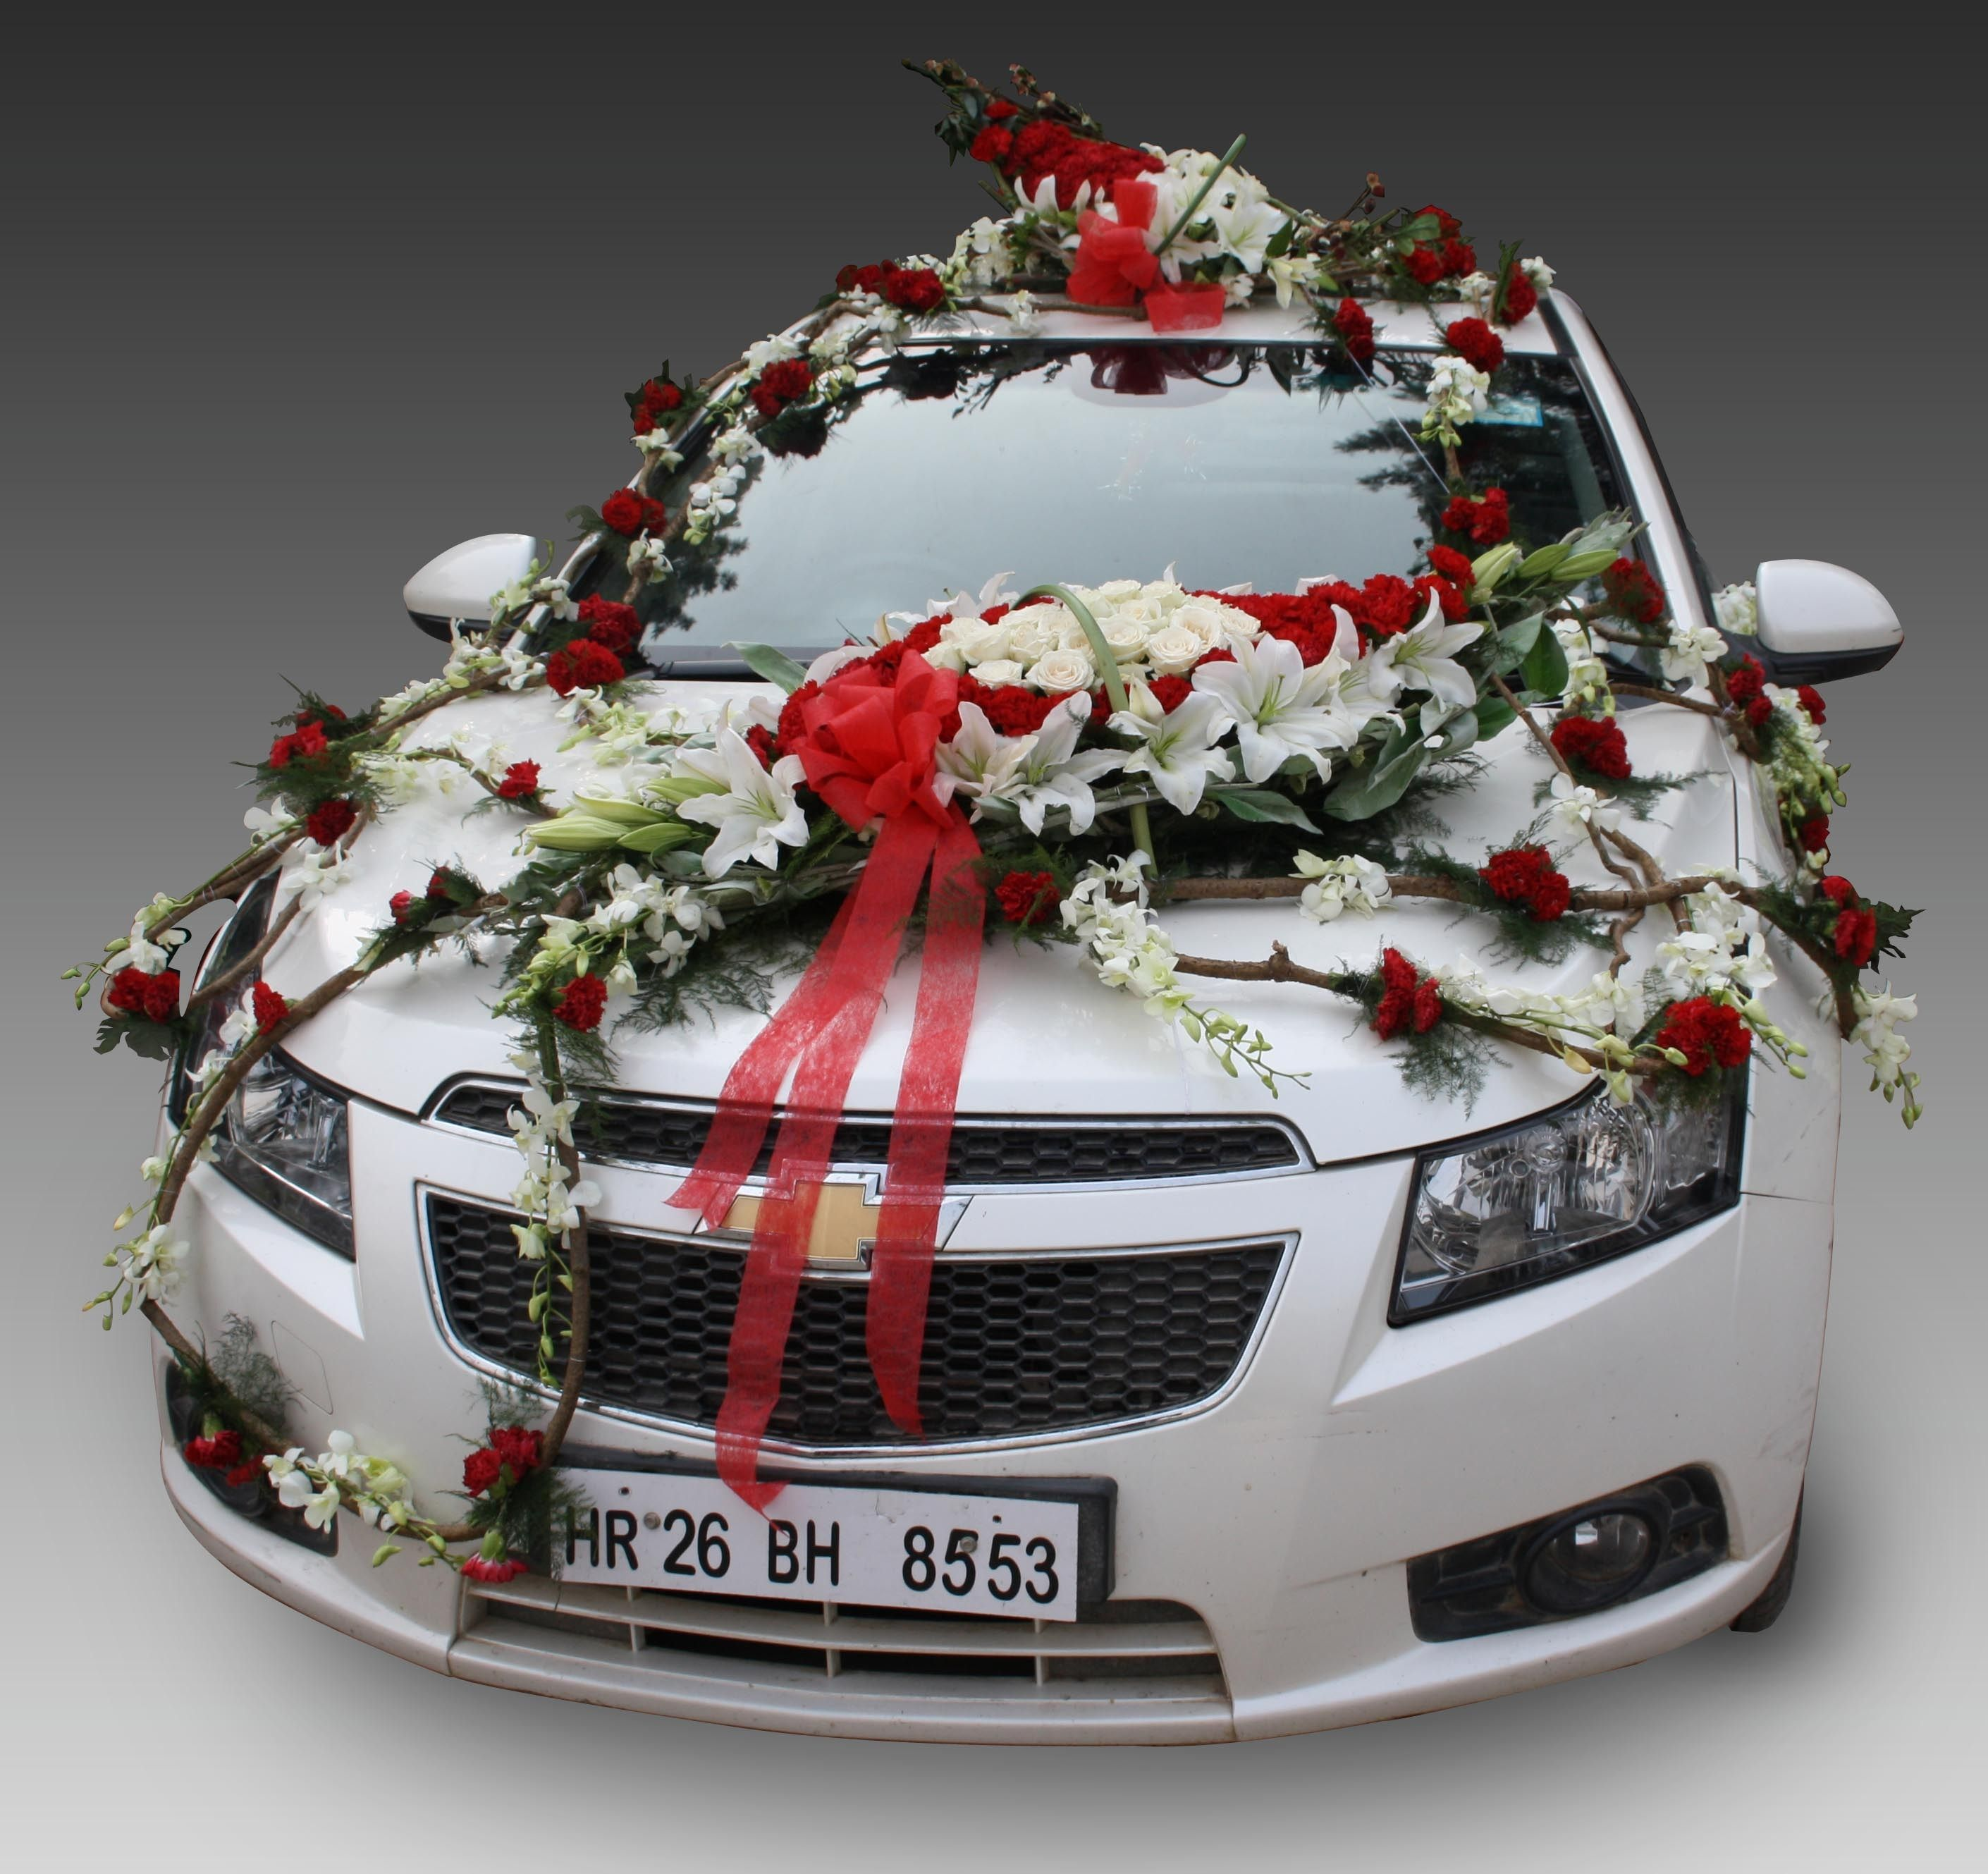 india products Classy Car Decorations,Indian Gifts